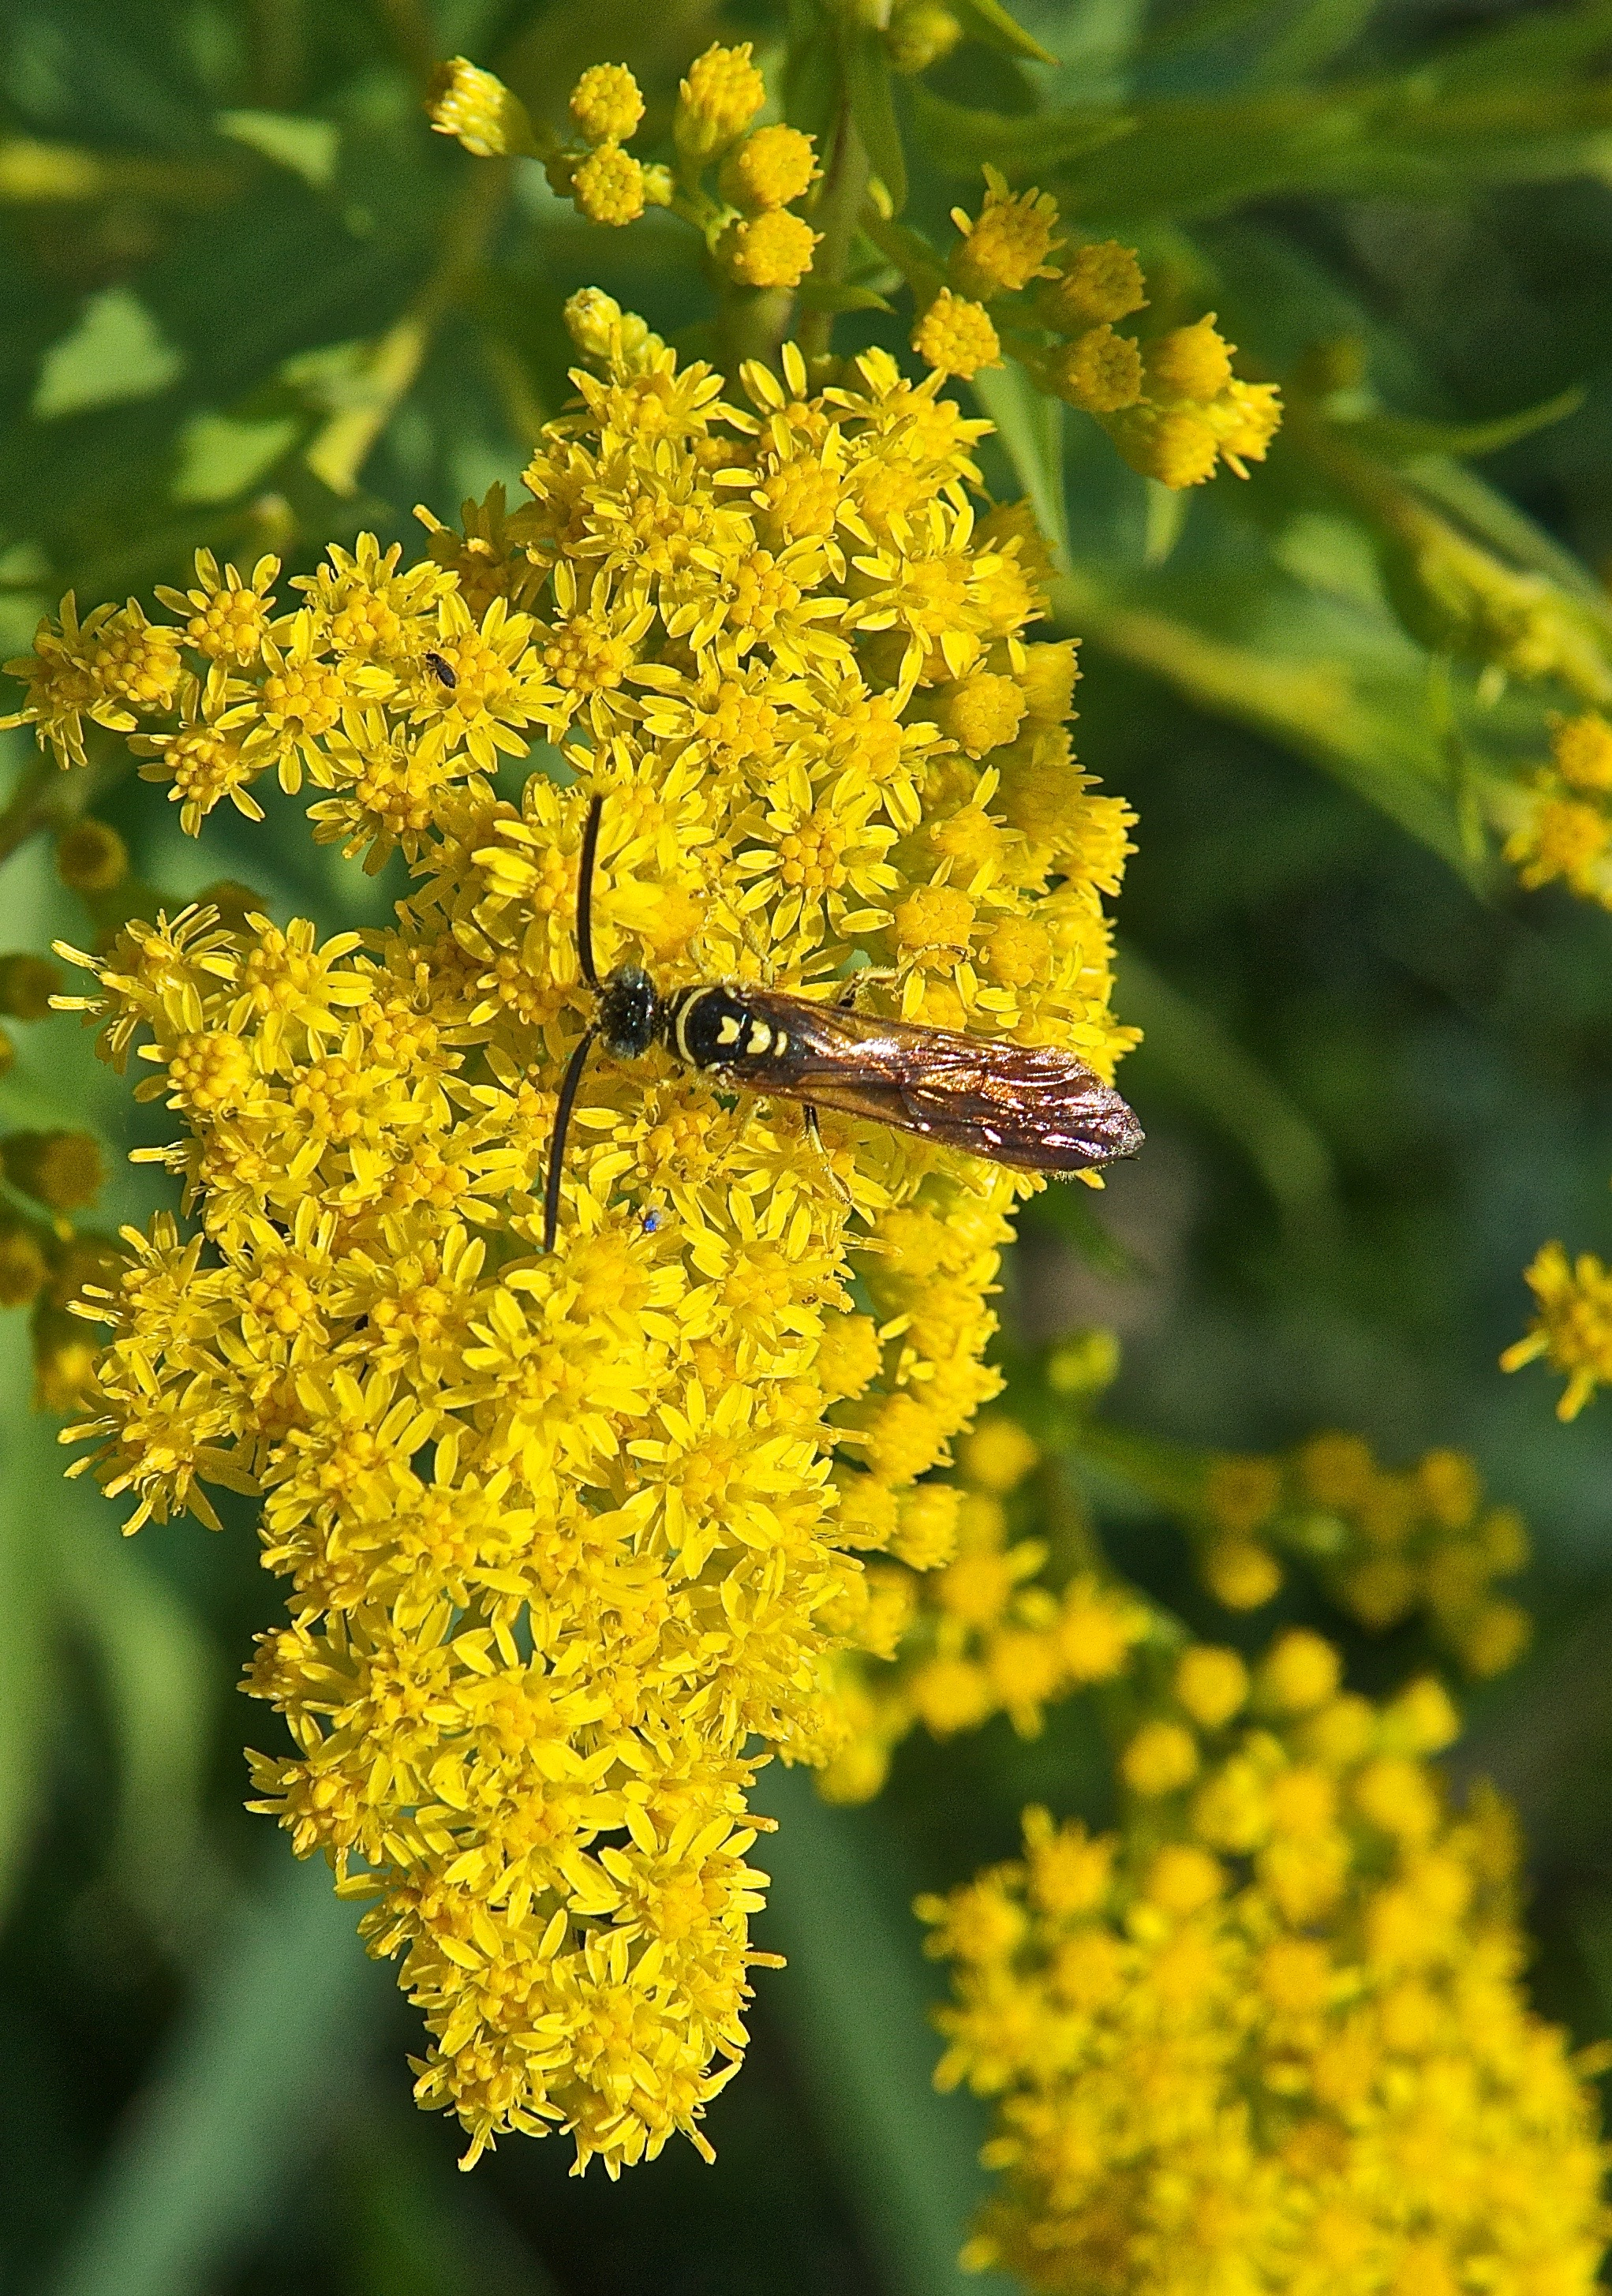 Tiphiid Wasp on Canada Goldenrod (Solidago canadensis)